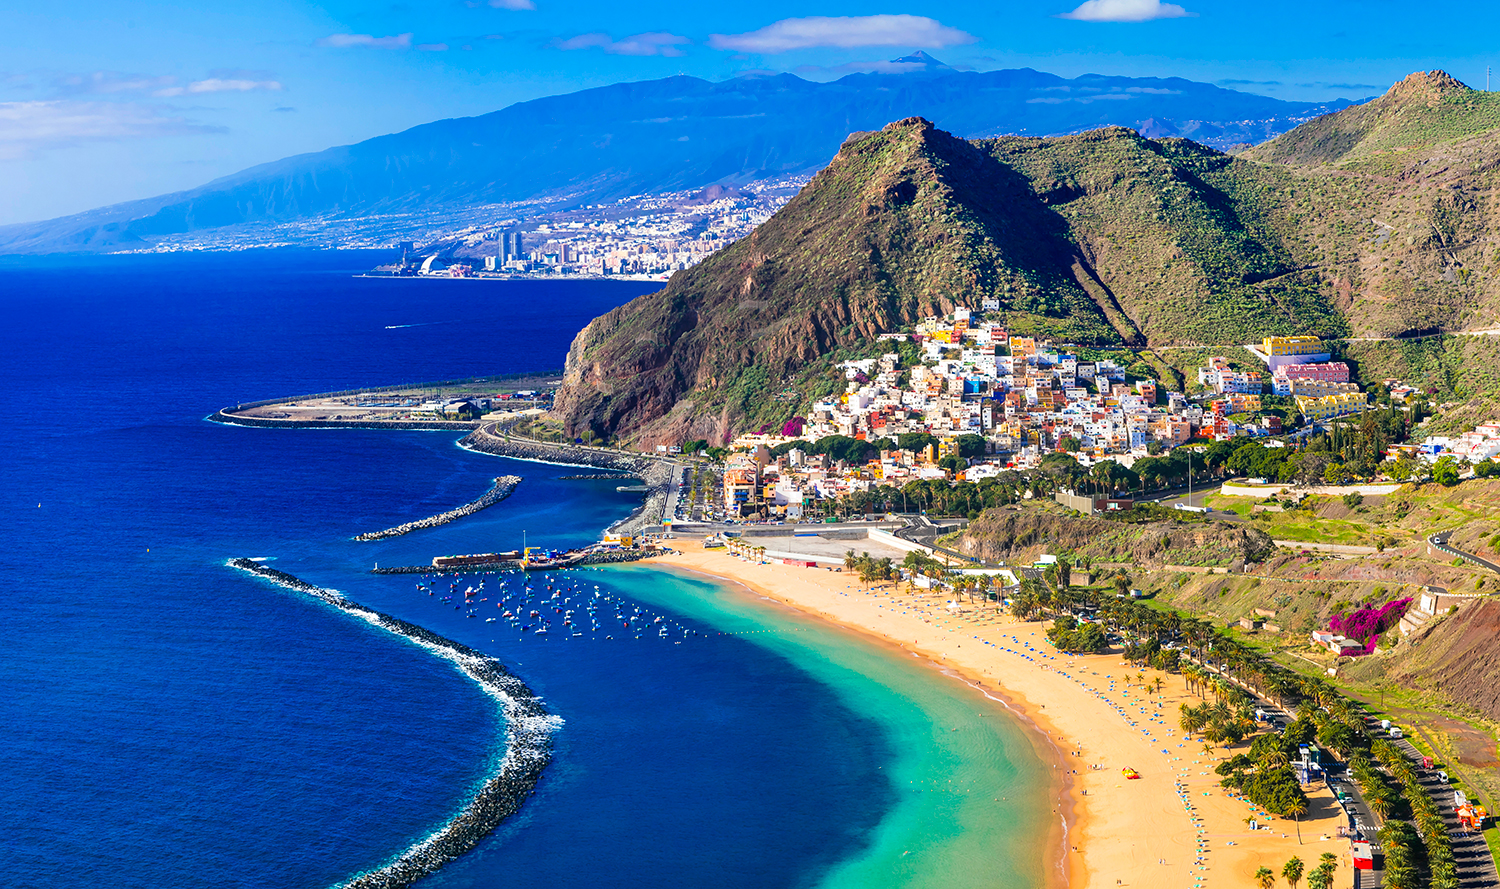 An Italian in Tenerife: pros and cons of life on this island